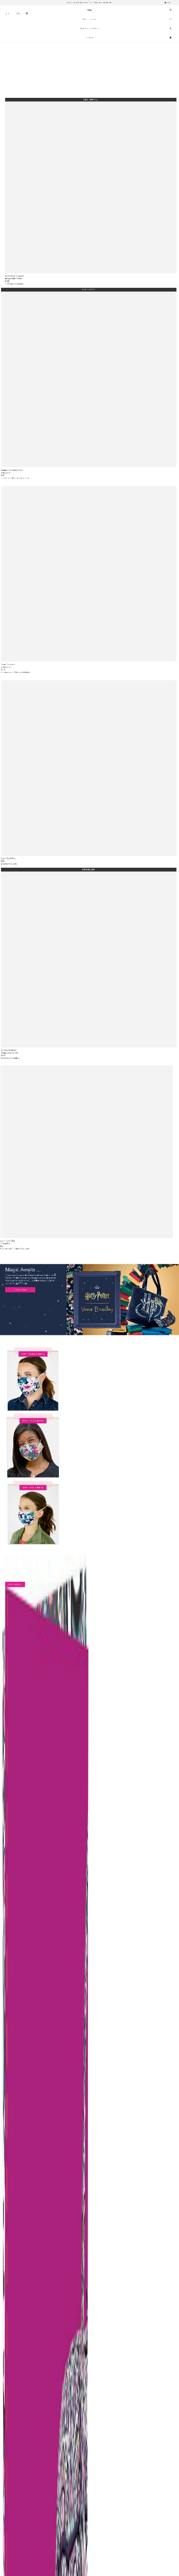 Vera Bradley, Inc. Website Screenshot